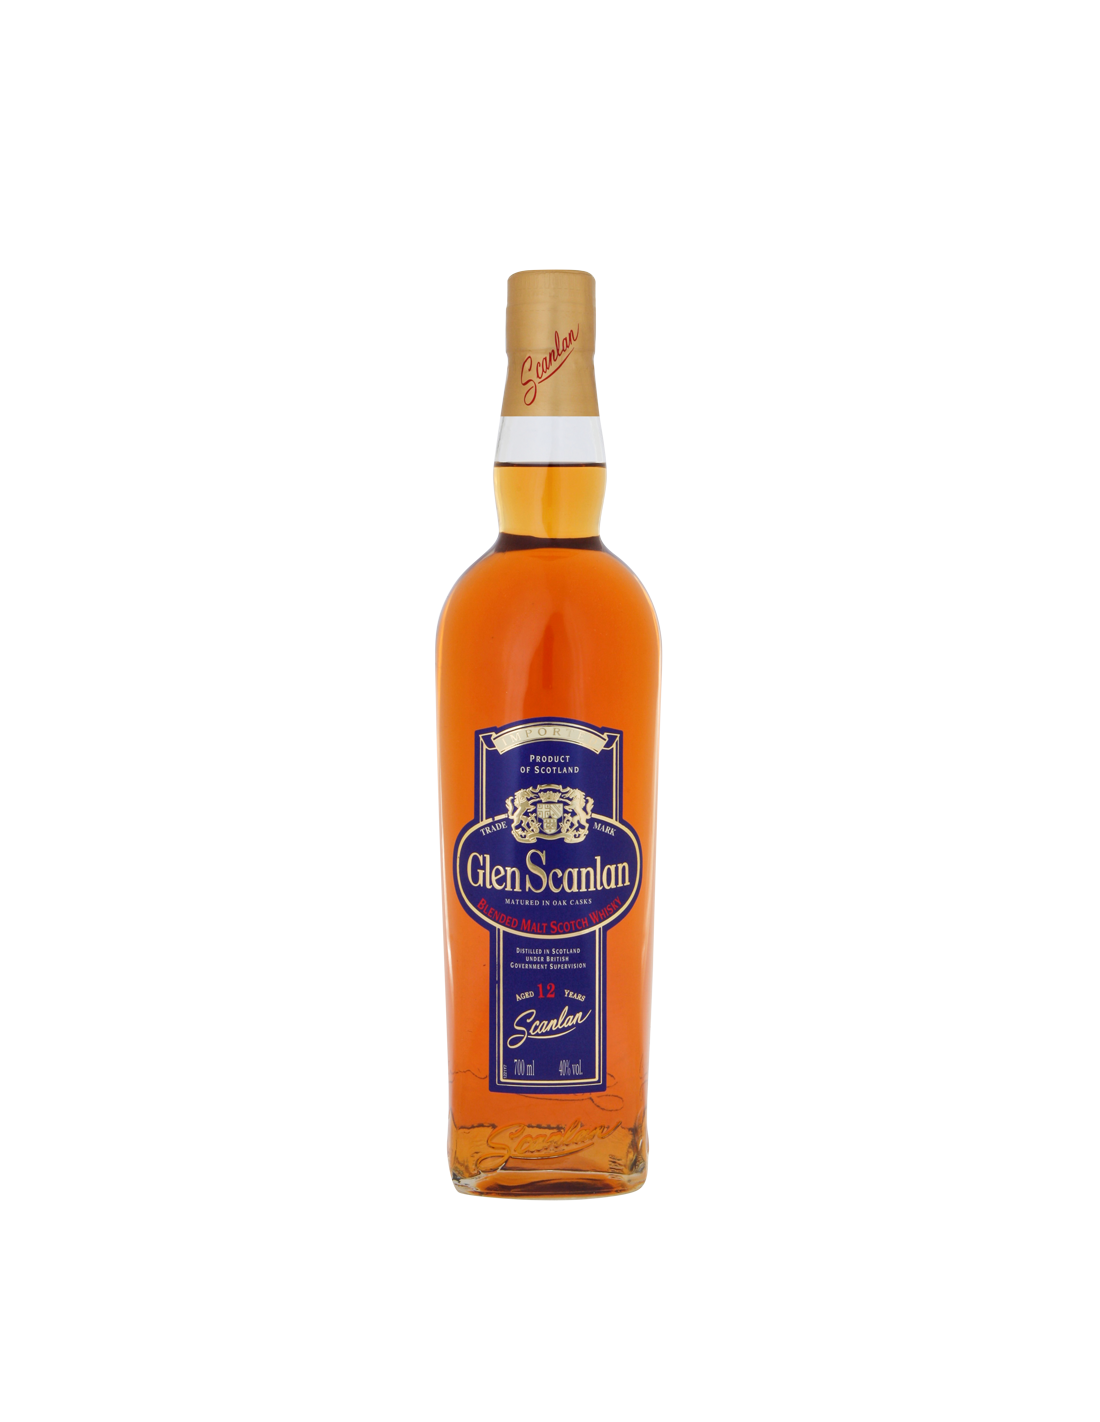 Whisky Glen Scanlan, 12 ani, 40% alc., 0.7L, Scotia